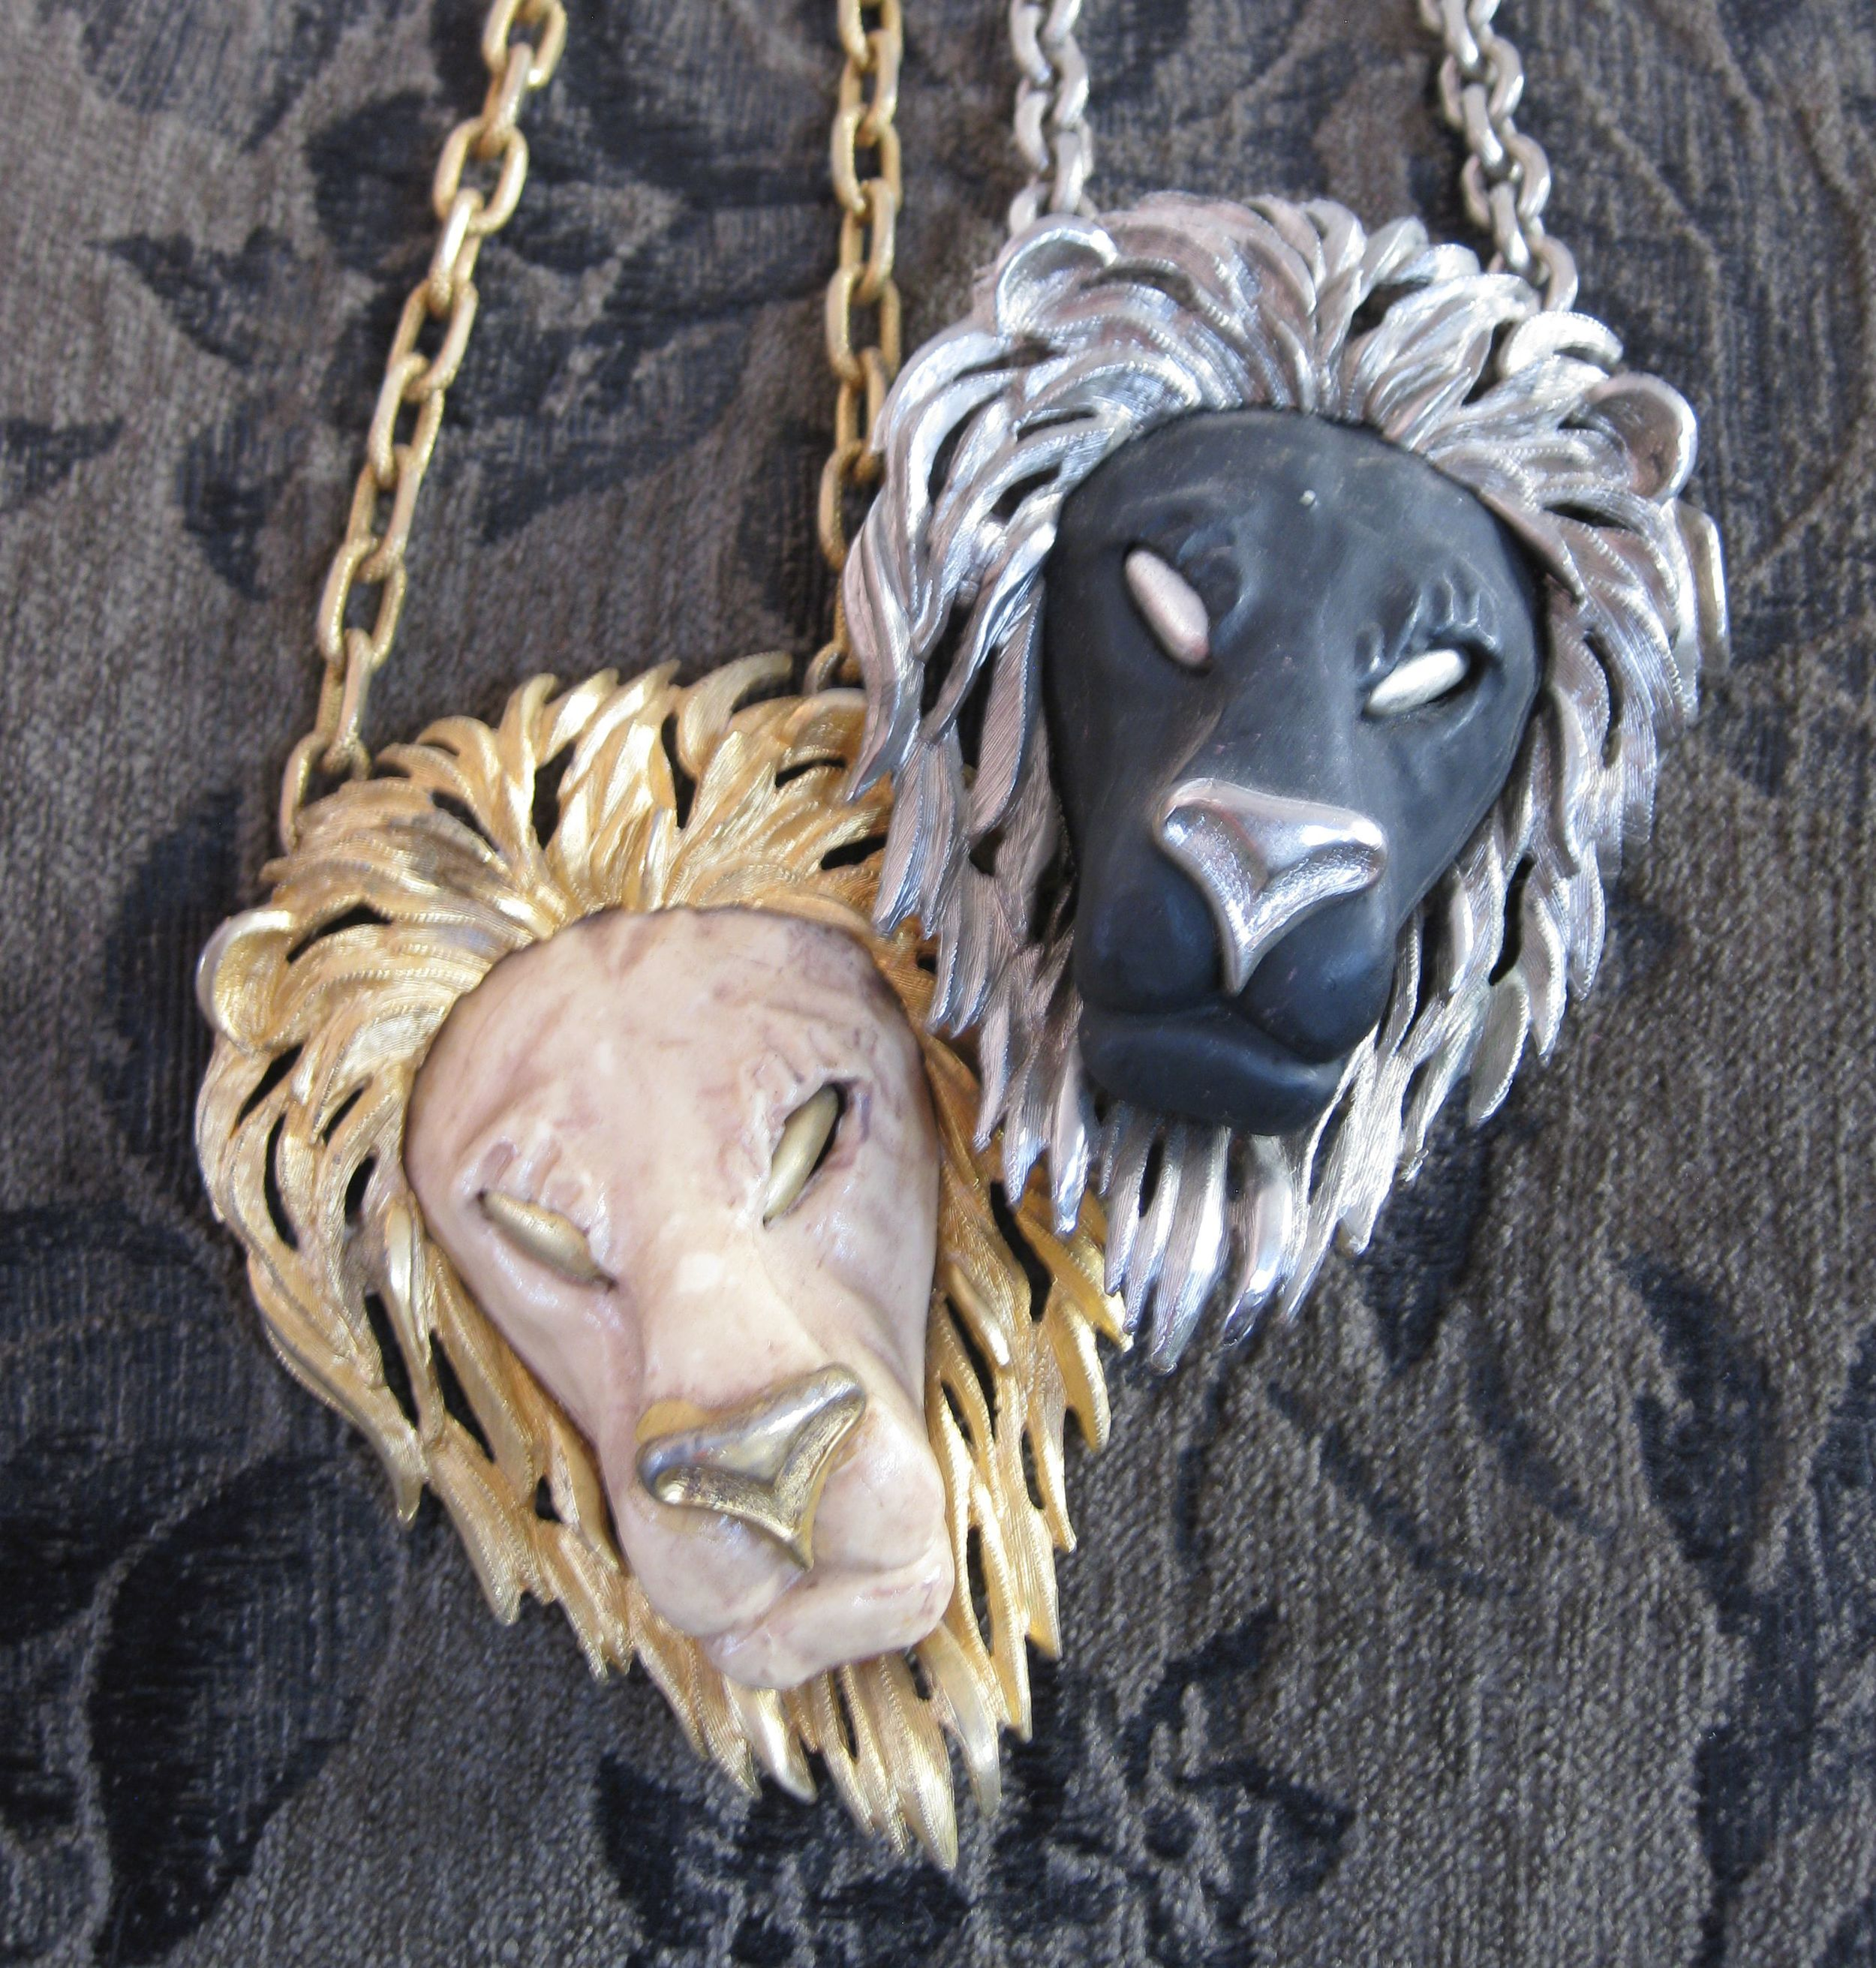 A duo of vintage Leo pendant necklaces, from the personal collection of the LEO DUO designers.